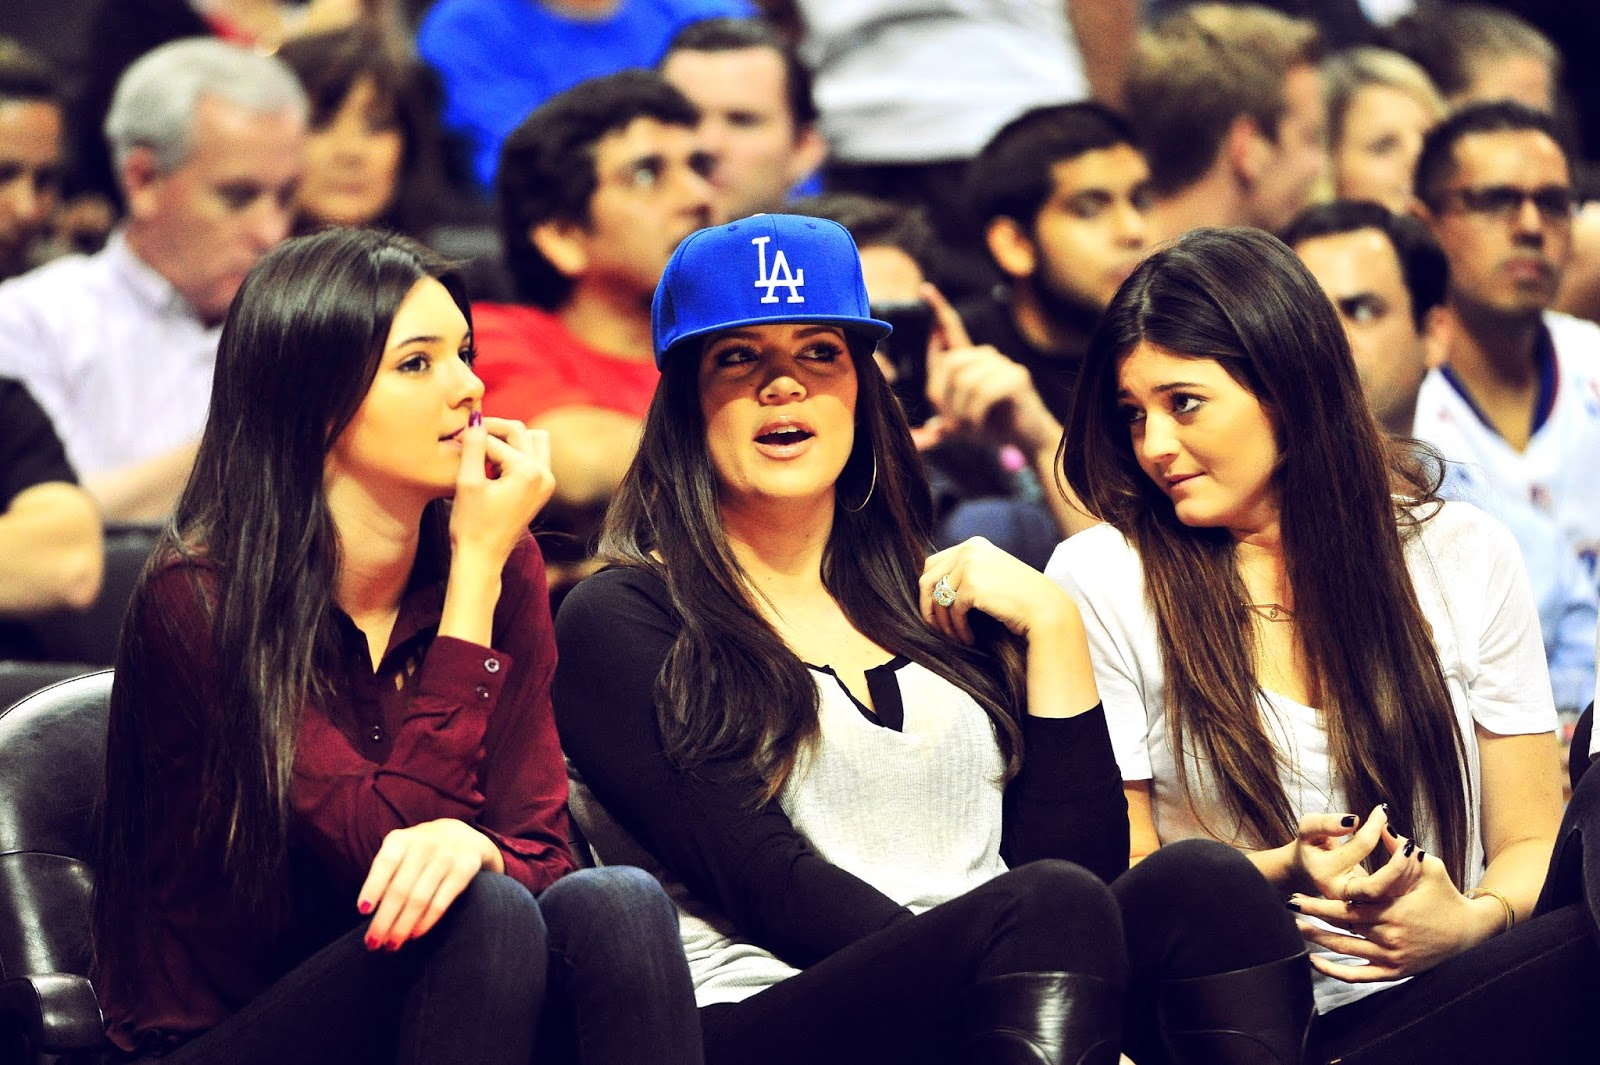 05 - Watching The Los Angeles Clippers Game on October 17, 2012